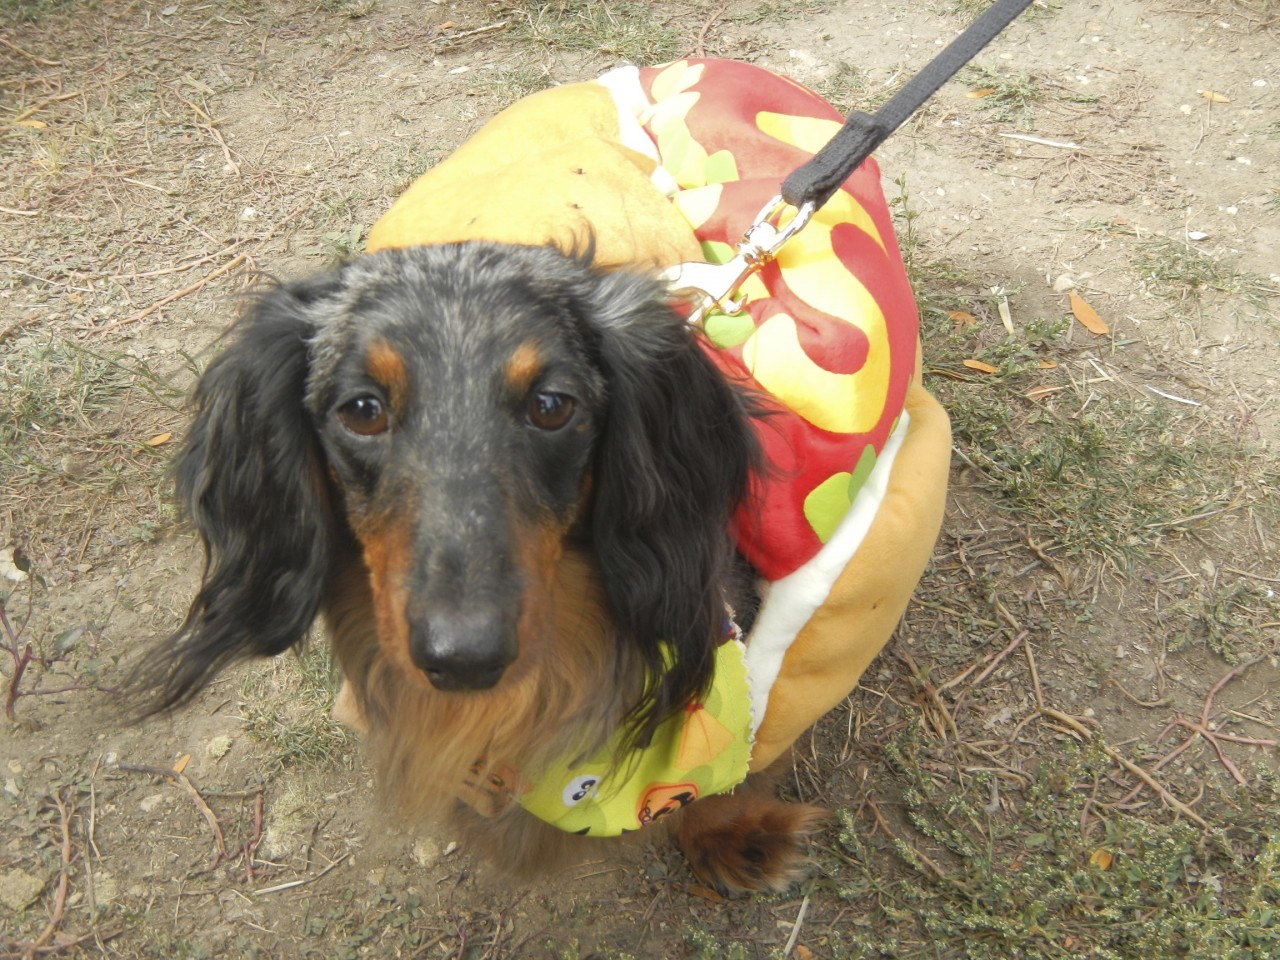 Daschund as a hot dog